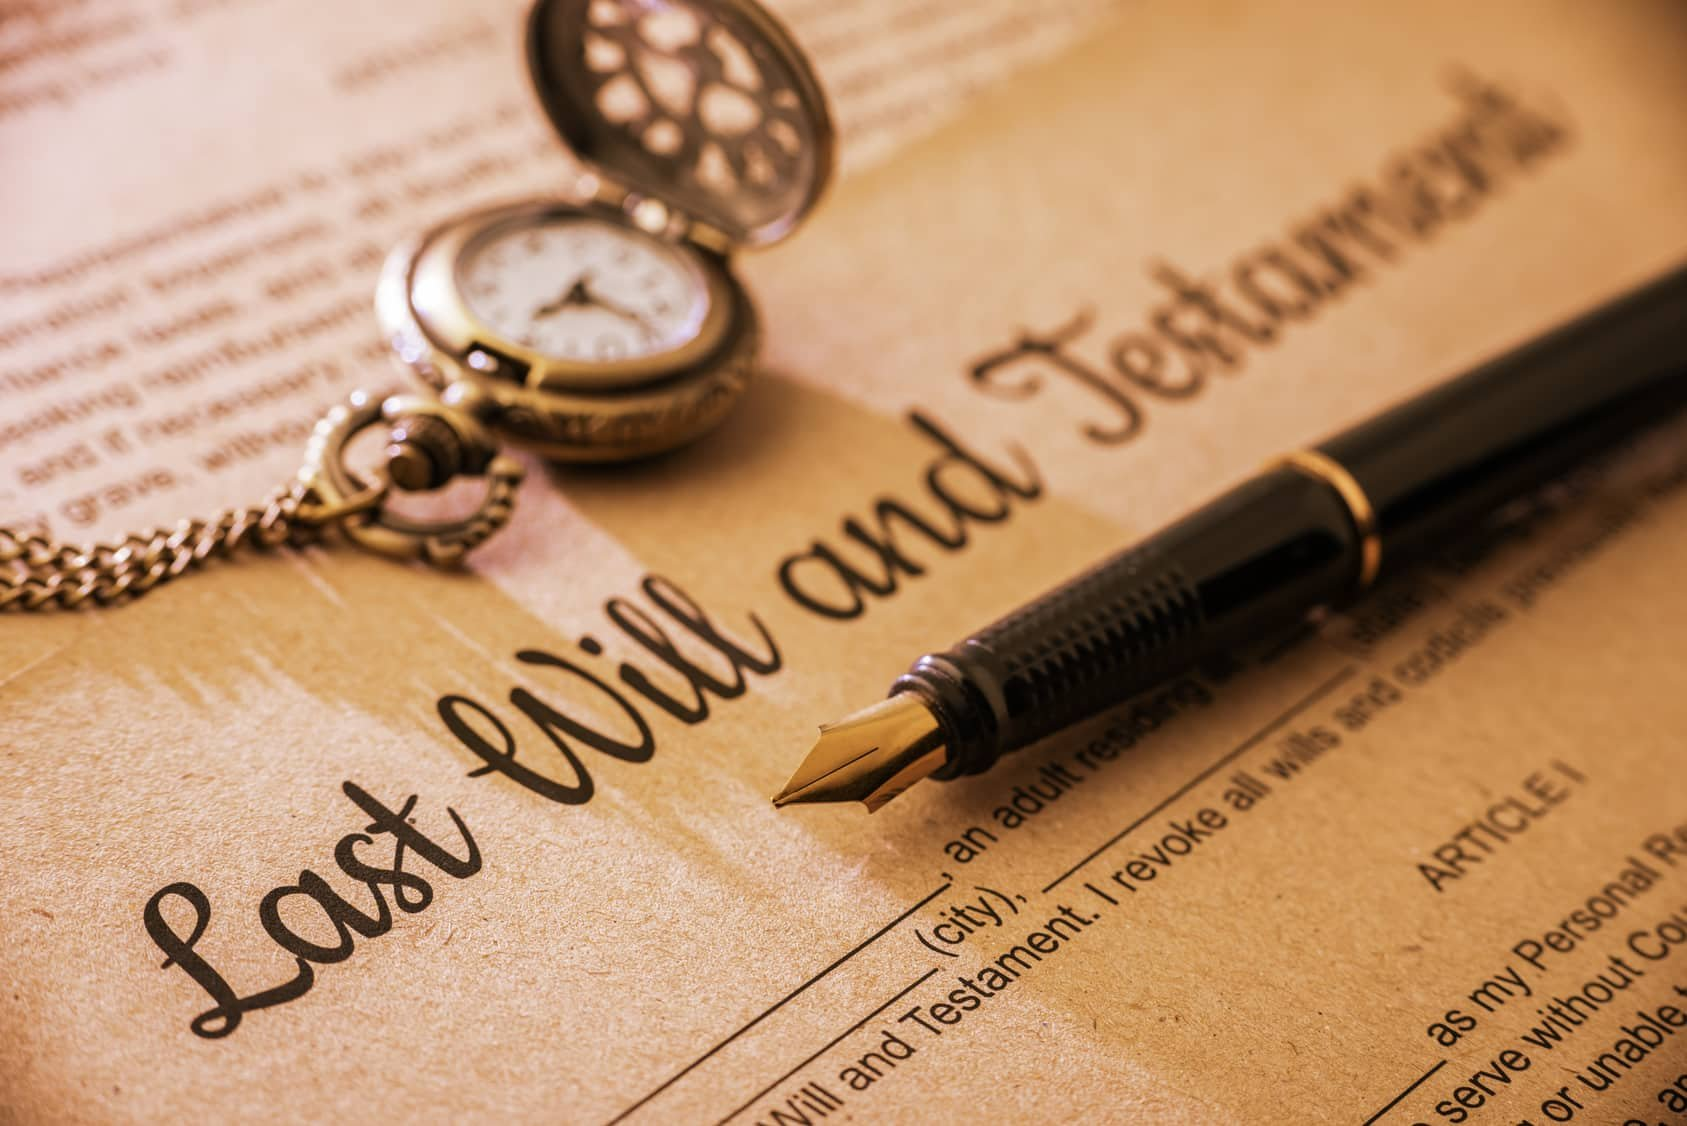 how to sell a house you inherited in colorado springs - the reality behind probate